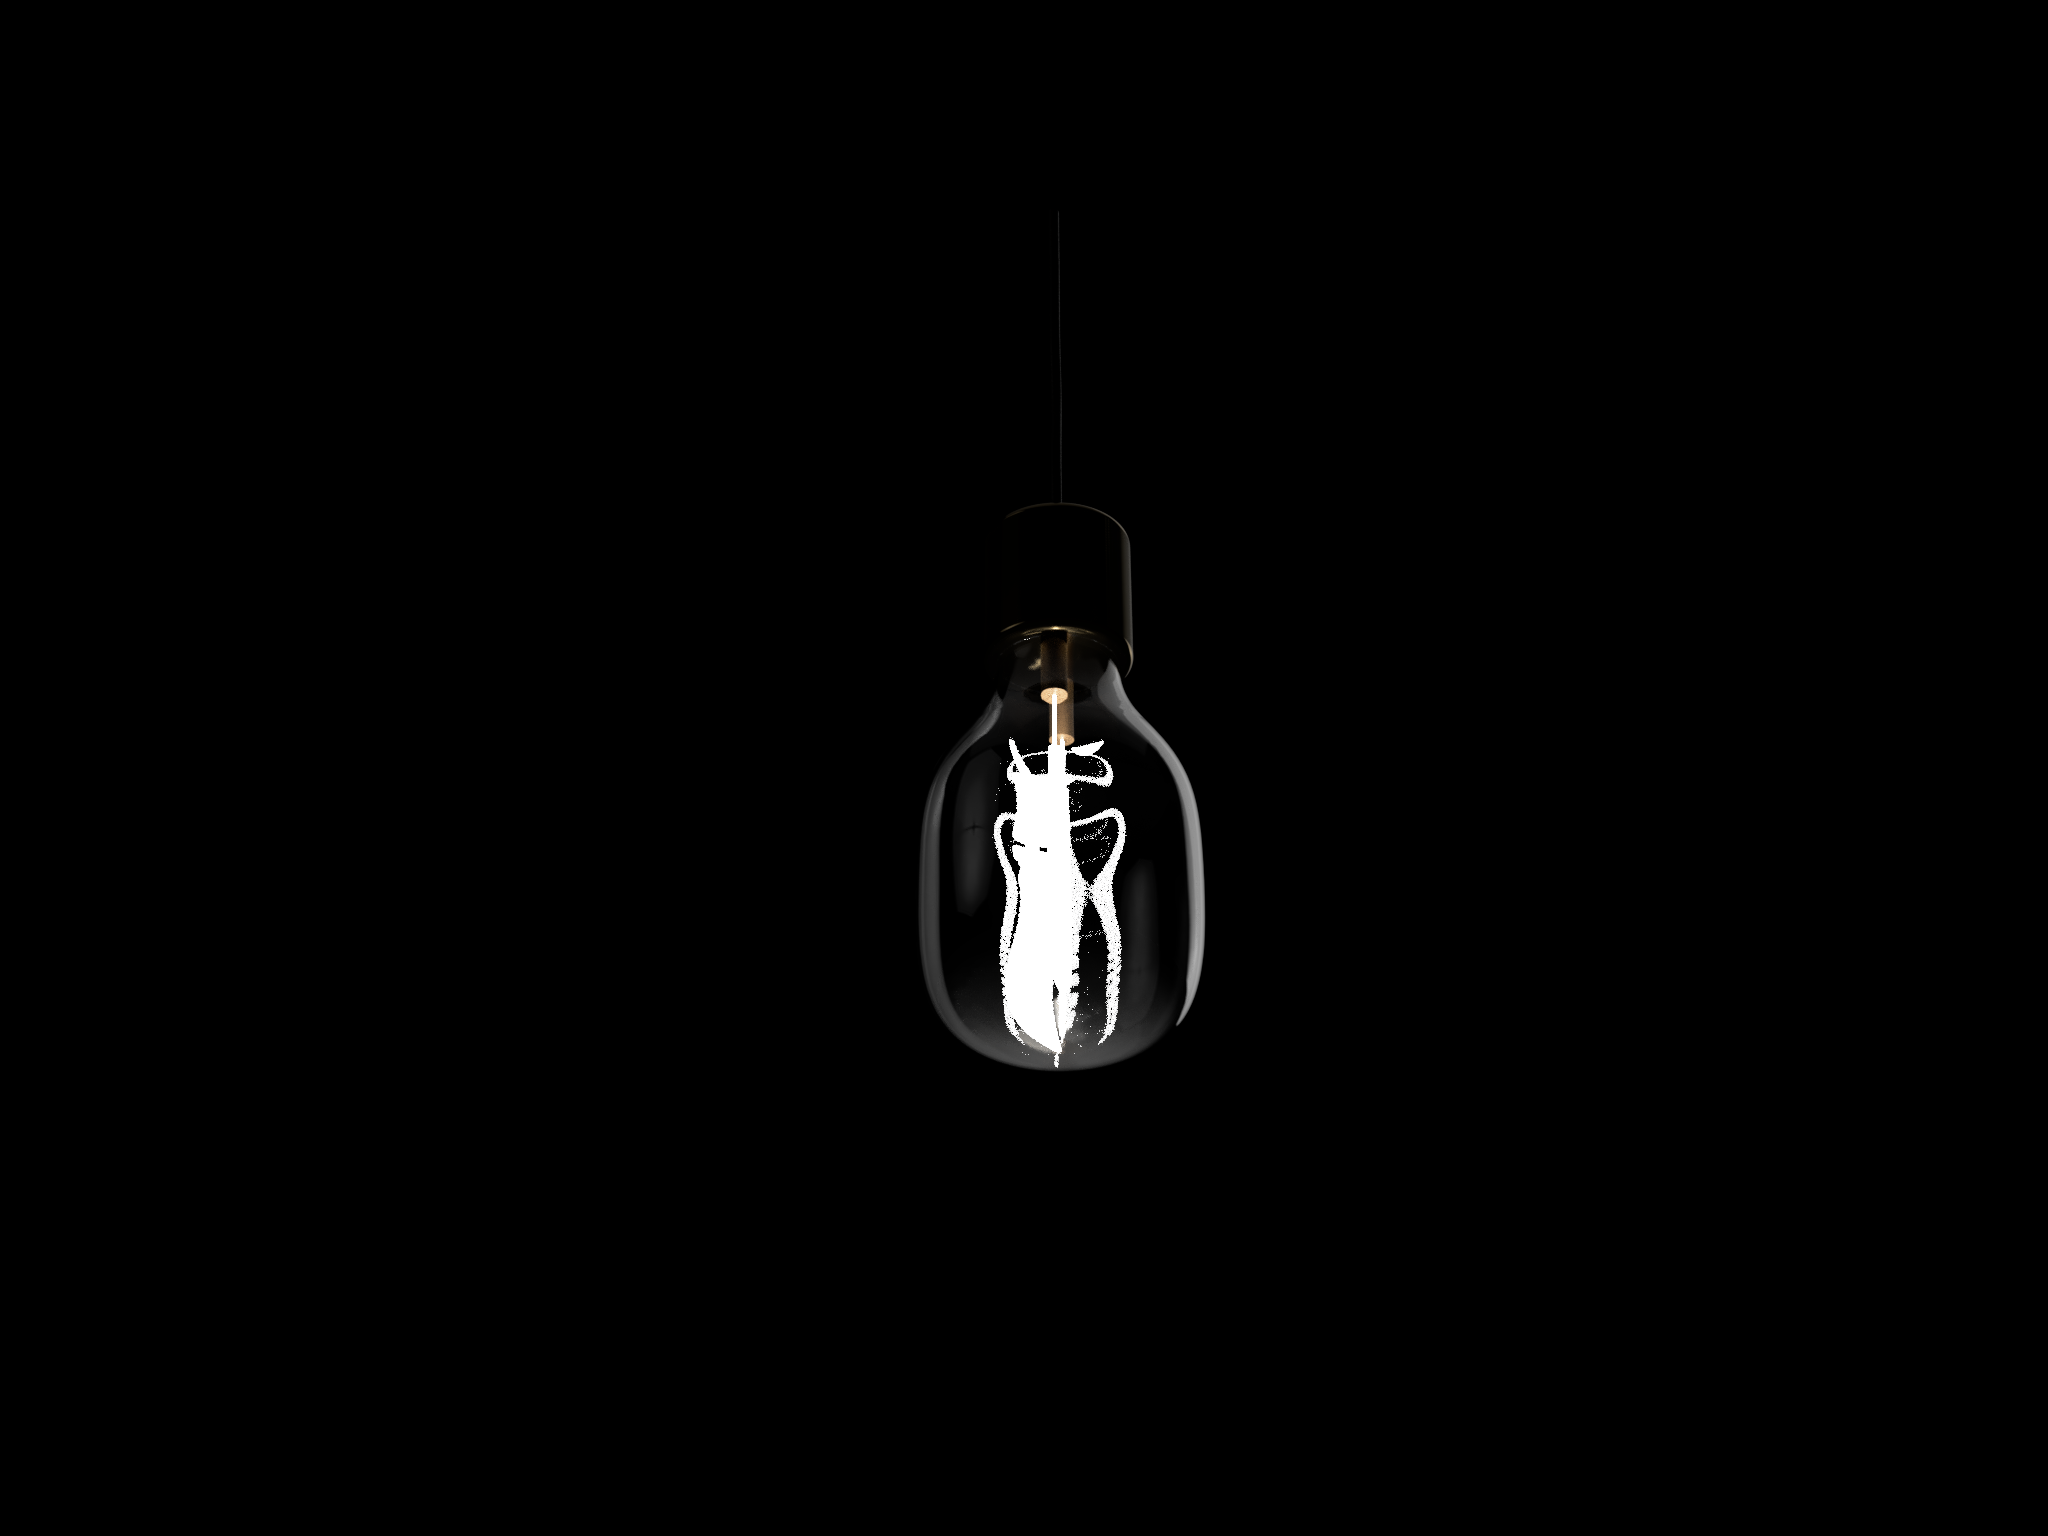 Light_Bulb_2018-Jun-09_07-24-22AM-000_CustomizedView7639418971_png